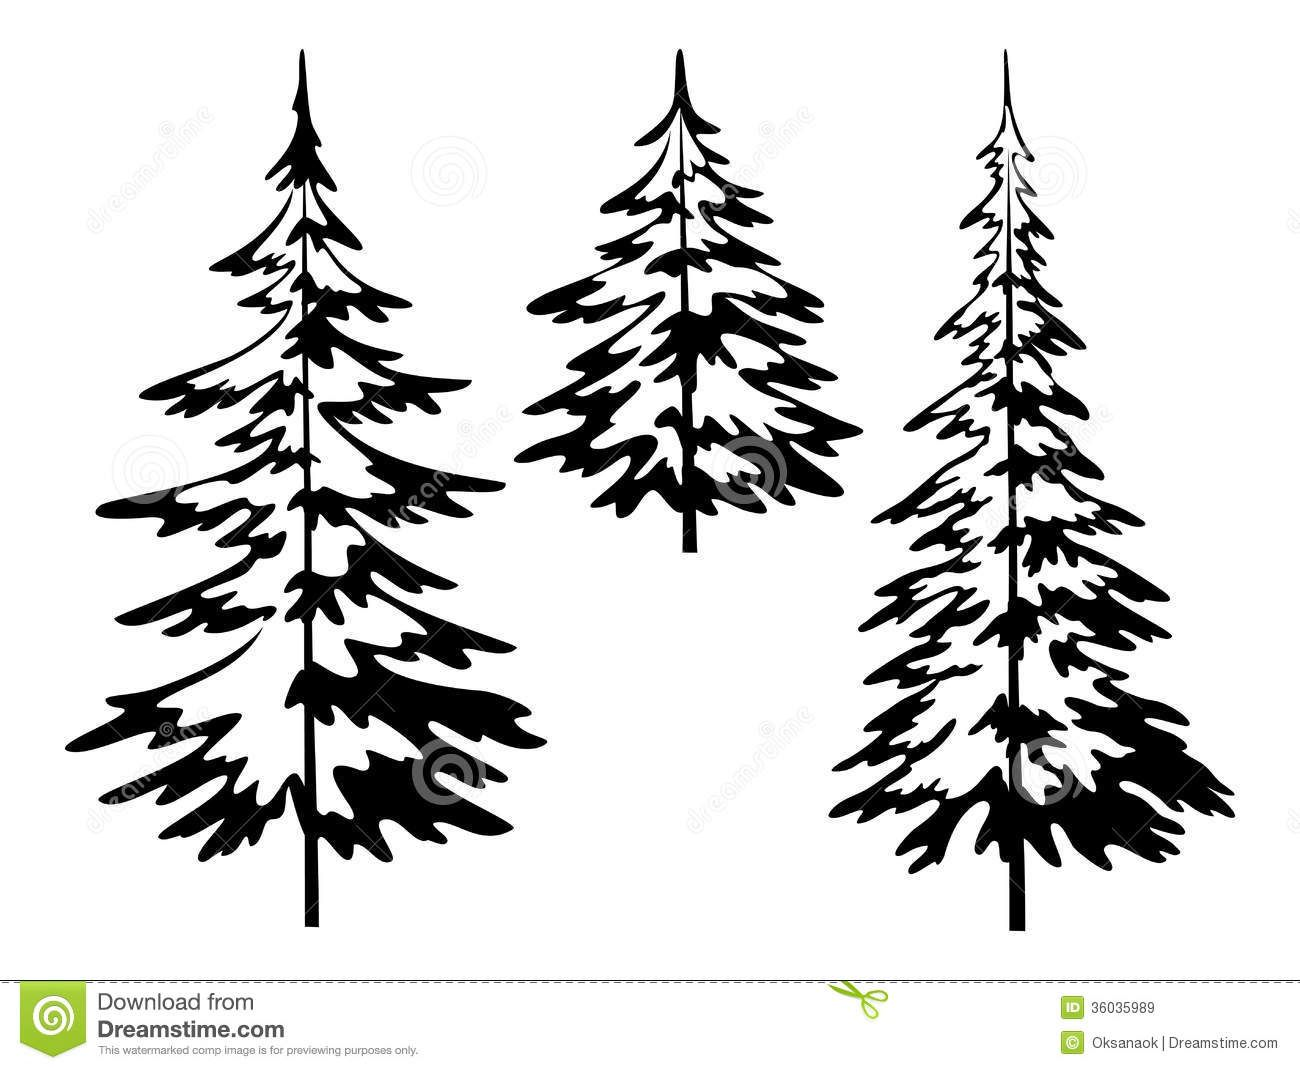 how to draw realistic pine trees pine trees drawing at getdrawings free download how to draw trees pine realistic